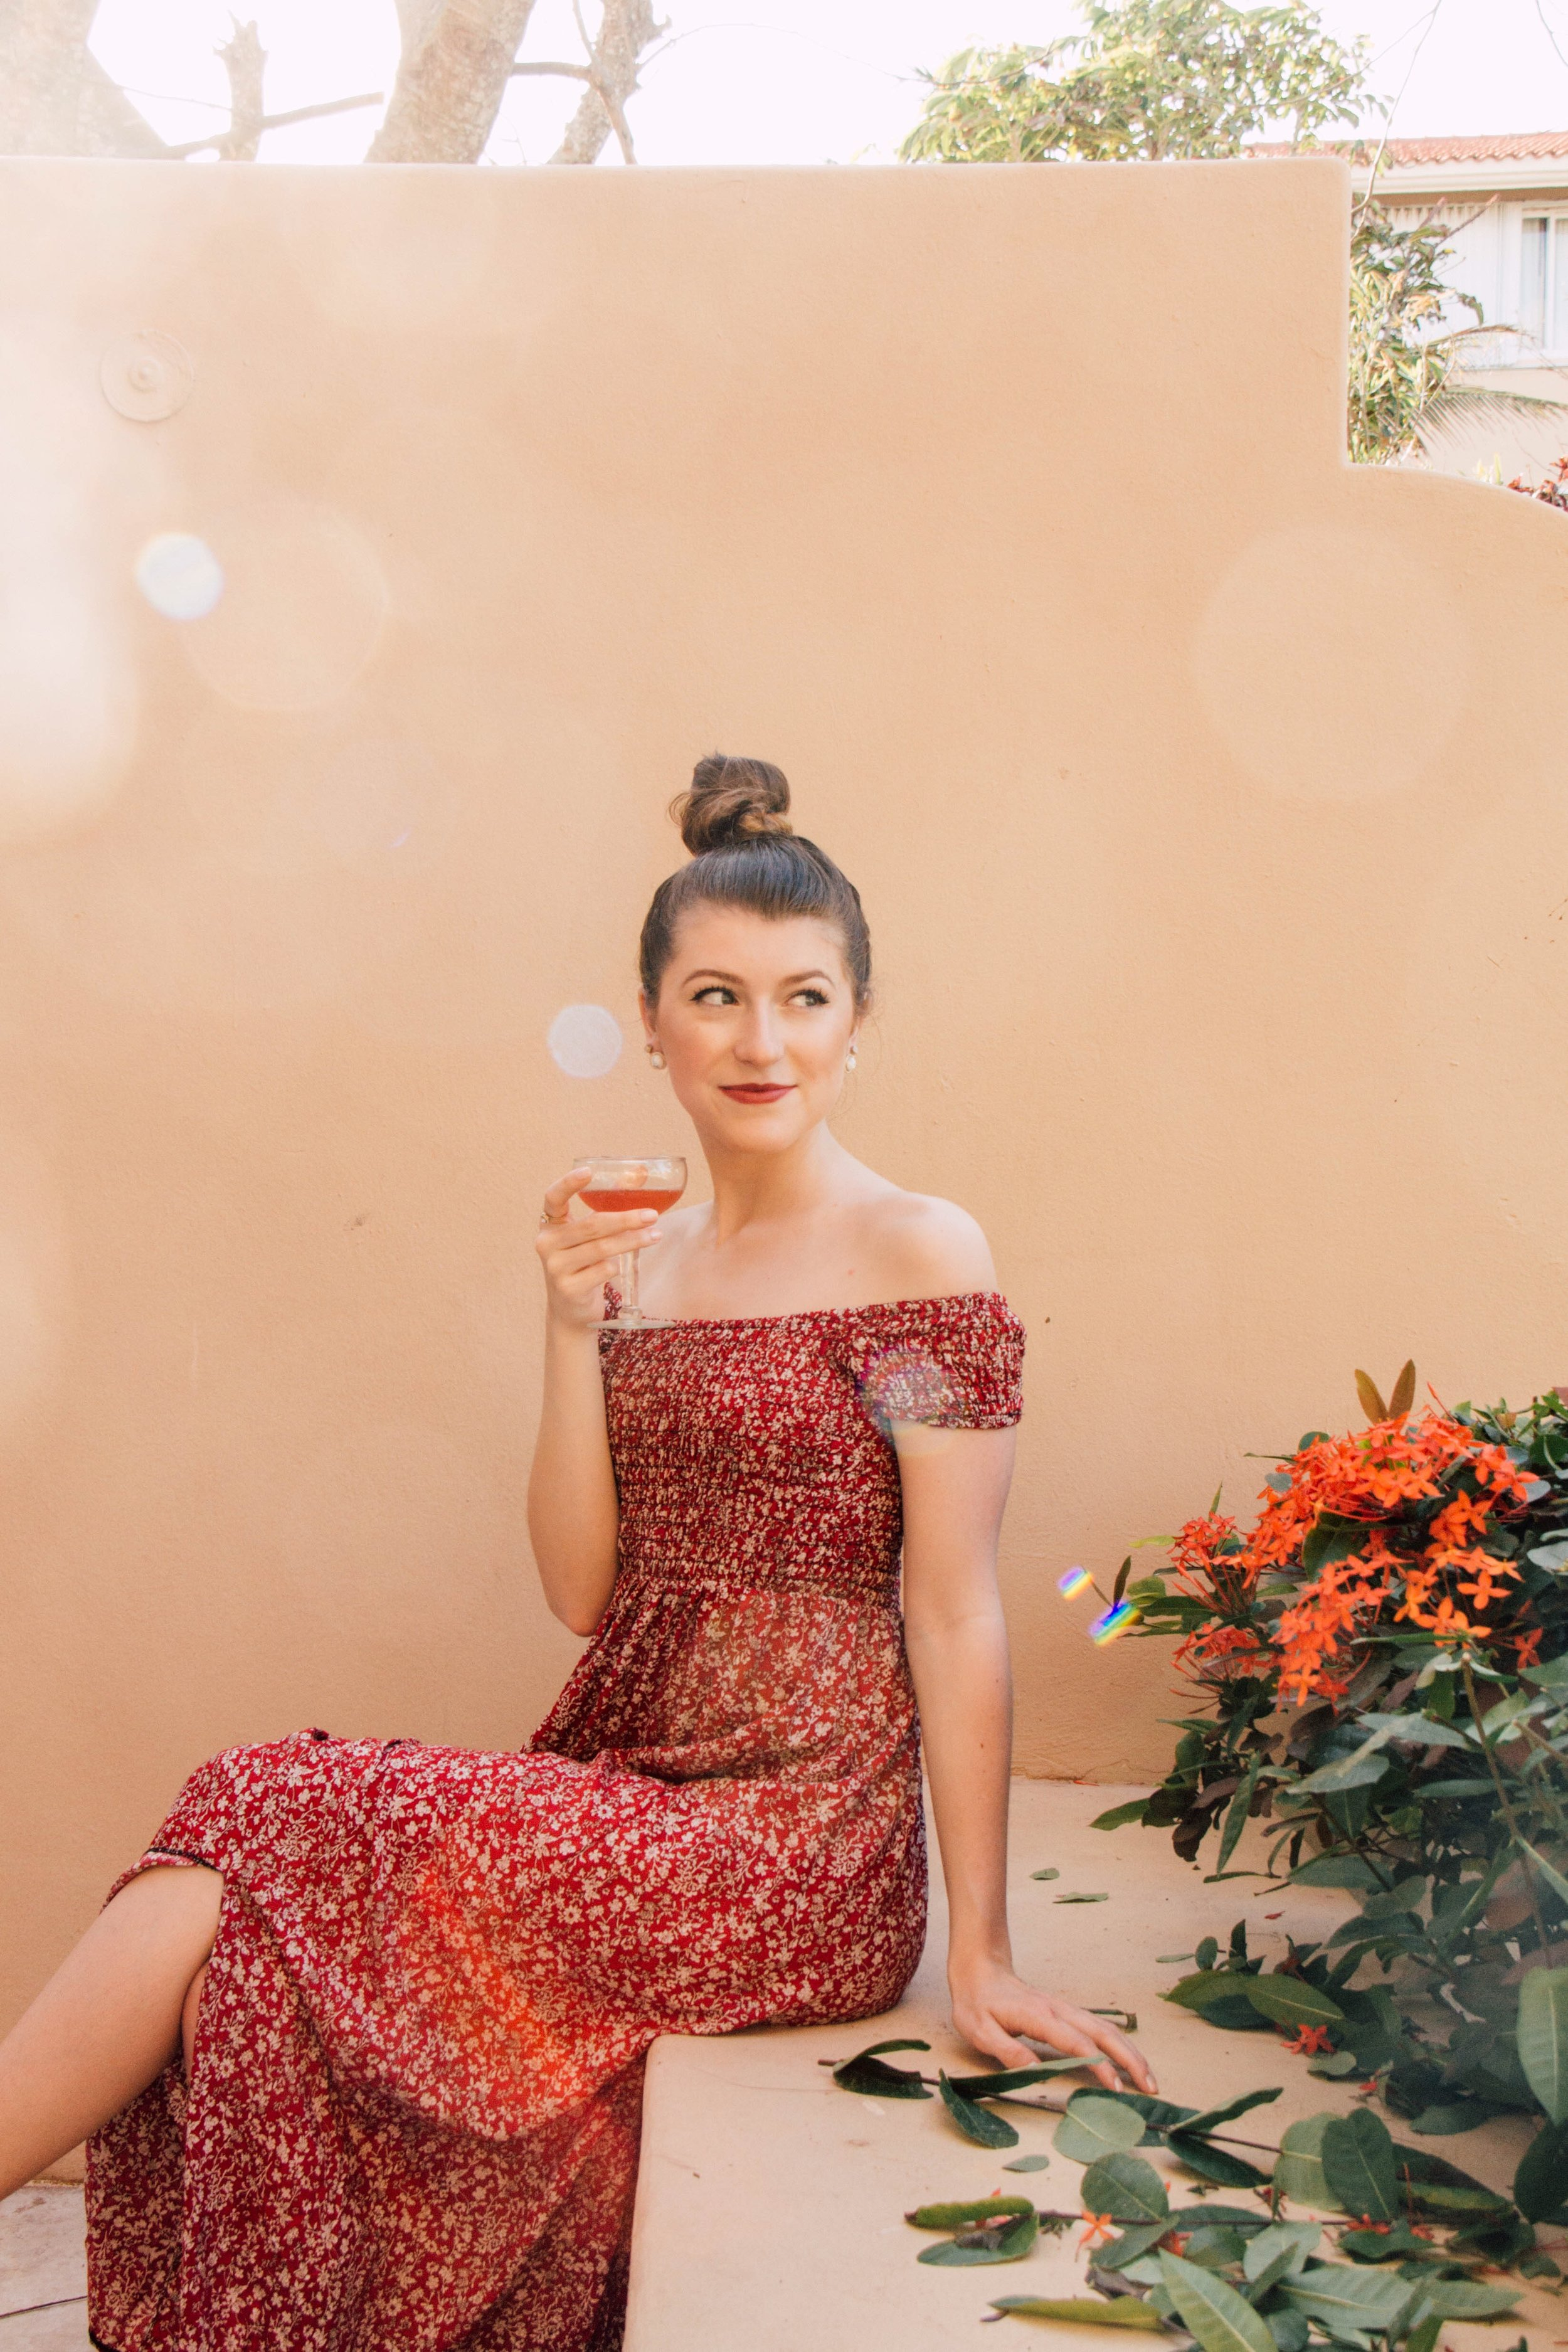 Emily Schindler - Emily Schindler is a photographer based in Brooklyn, New York. She's a pancake enthusiast who adores flowers, golden hour, pugs, travel and photography.Website